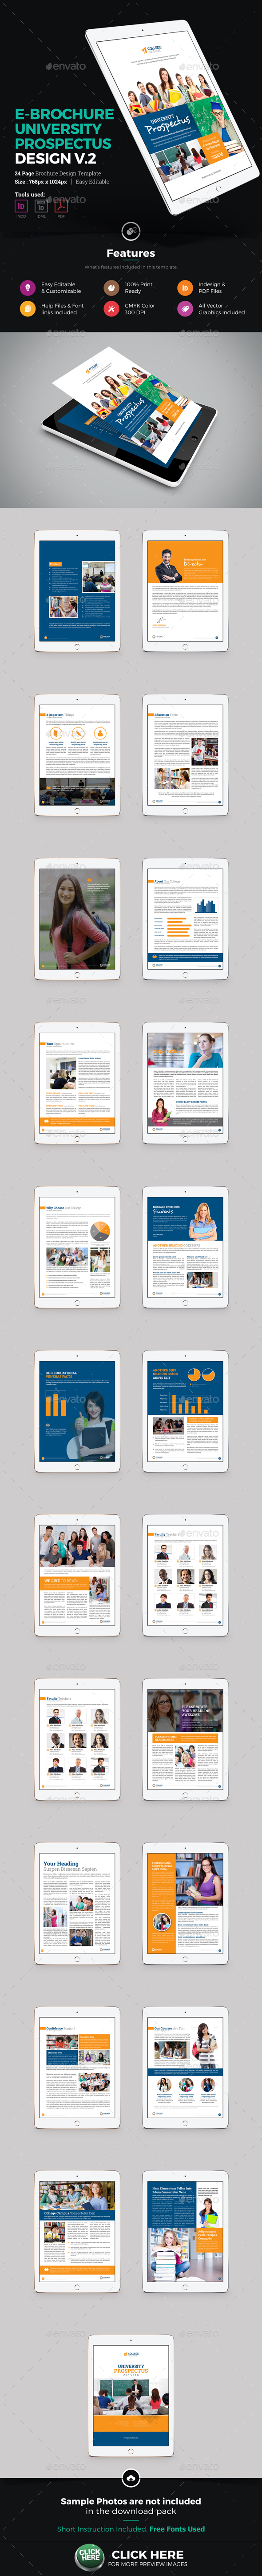 E-Brochure University Prospectus Design v2 - ePublishing